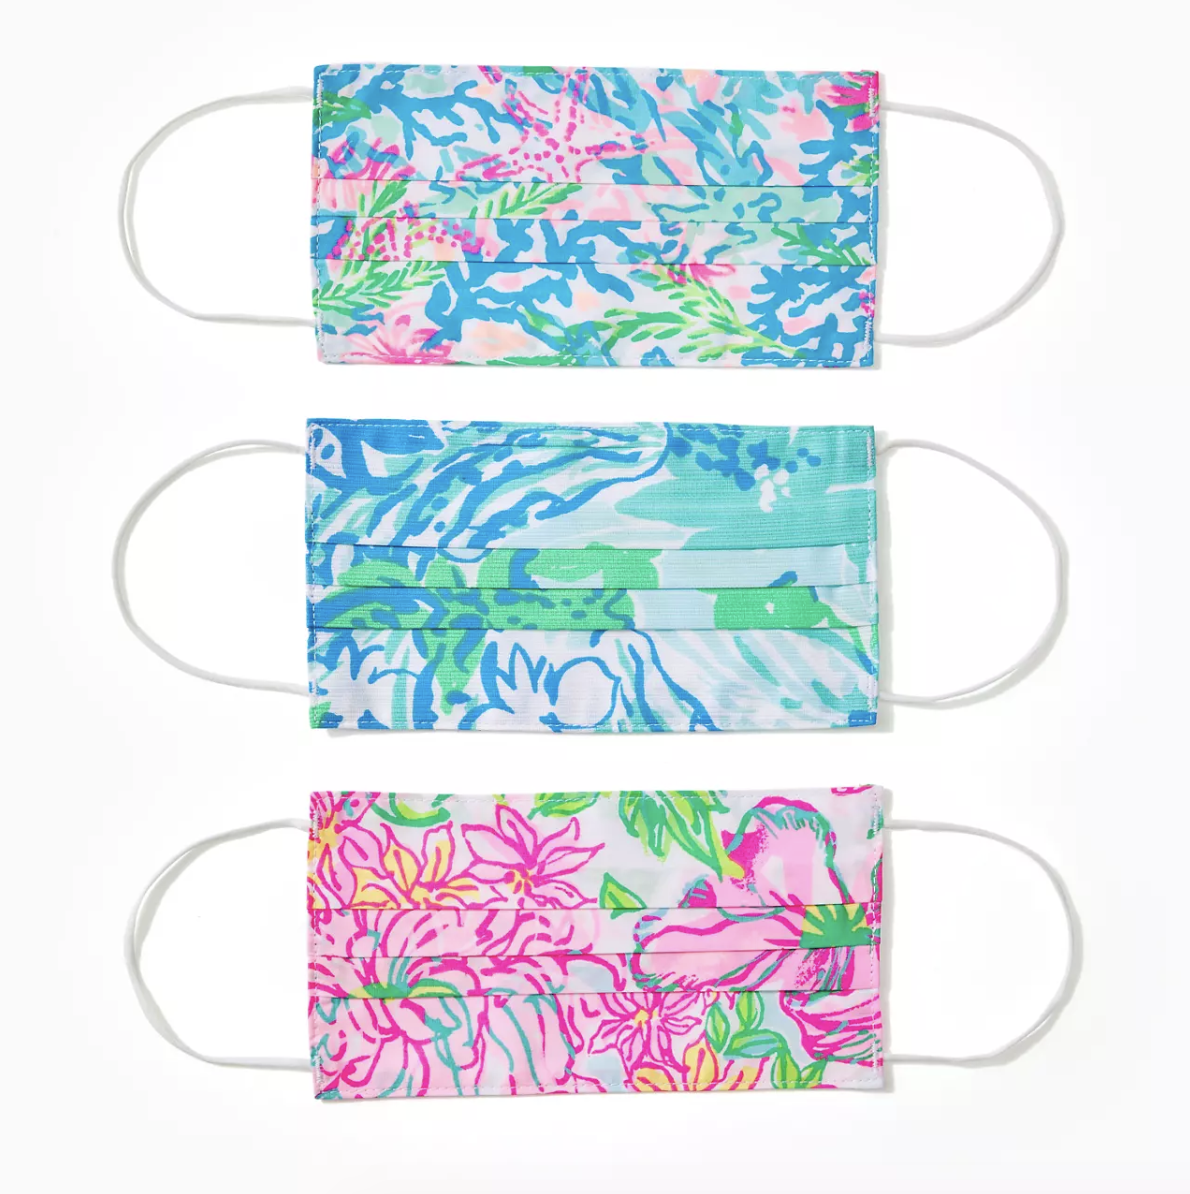 Lilly Pulitzer print masks in blue, green, and pink florals